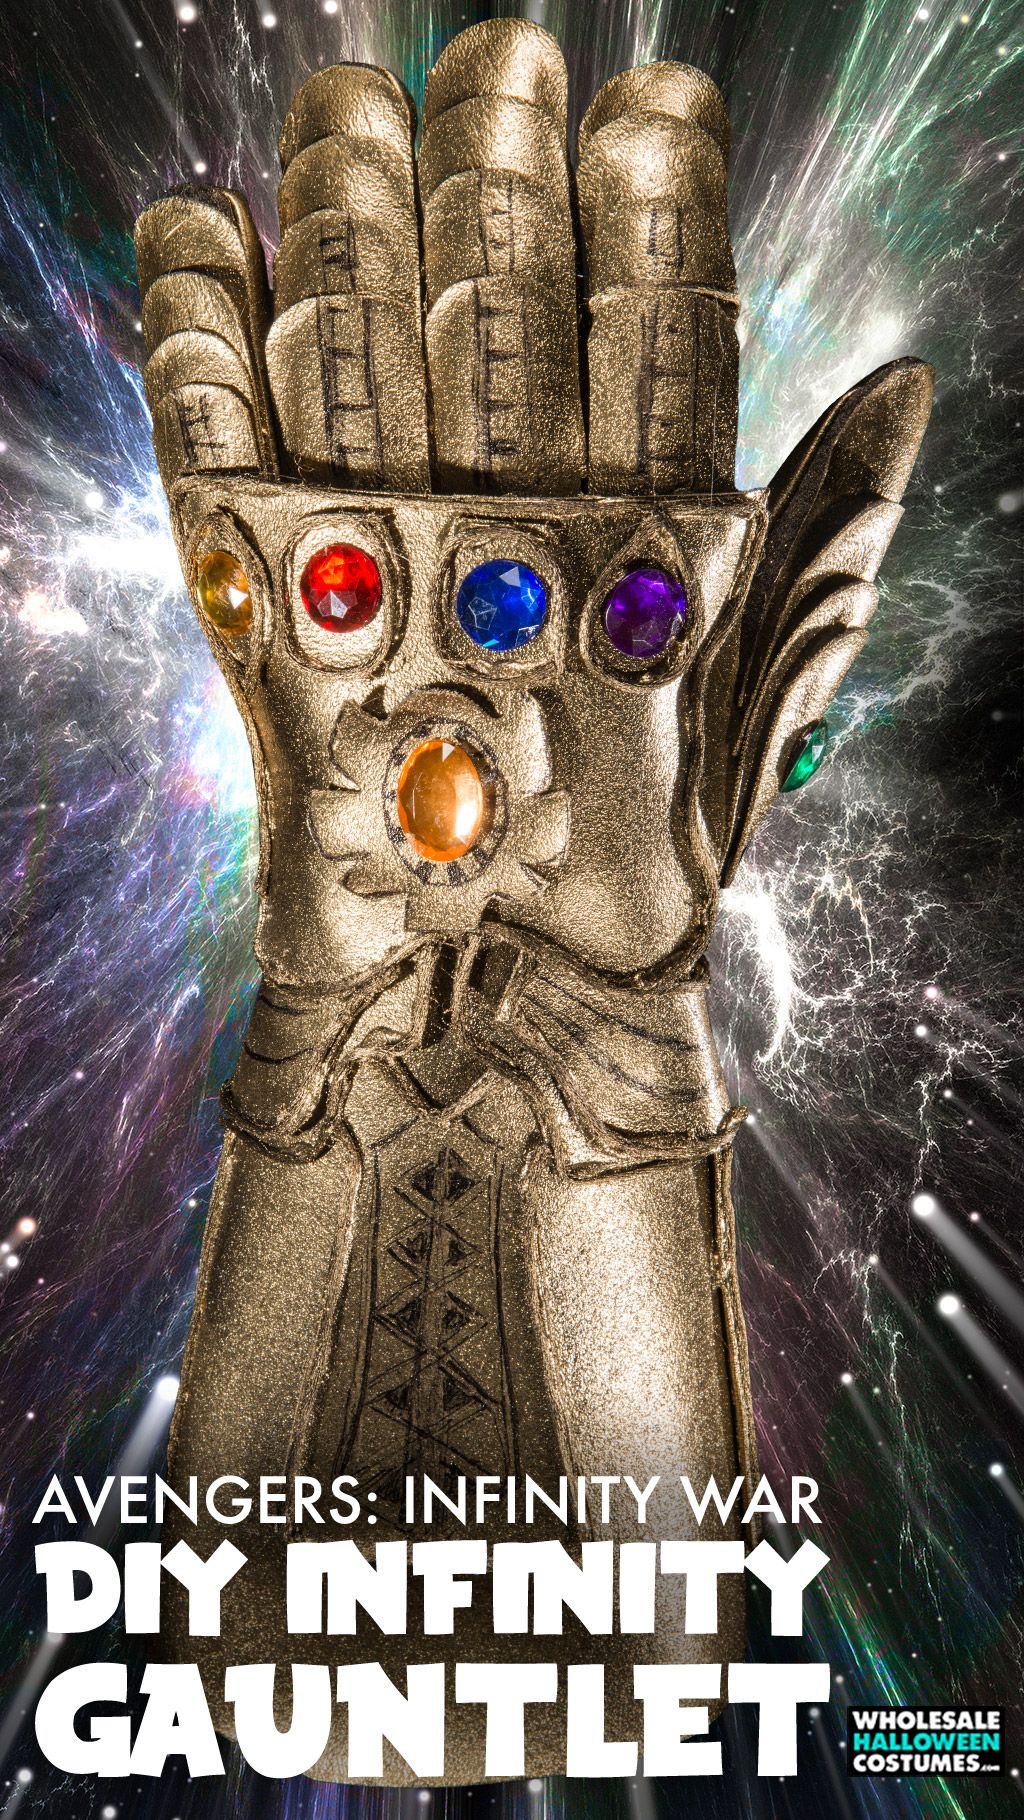 diy infinity gauntlet costume upgrade making puppets props and